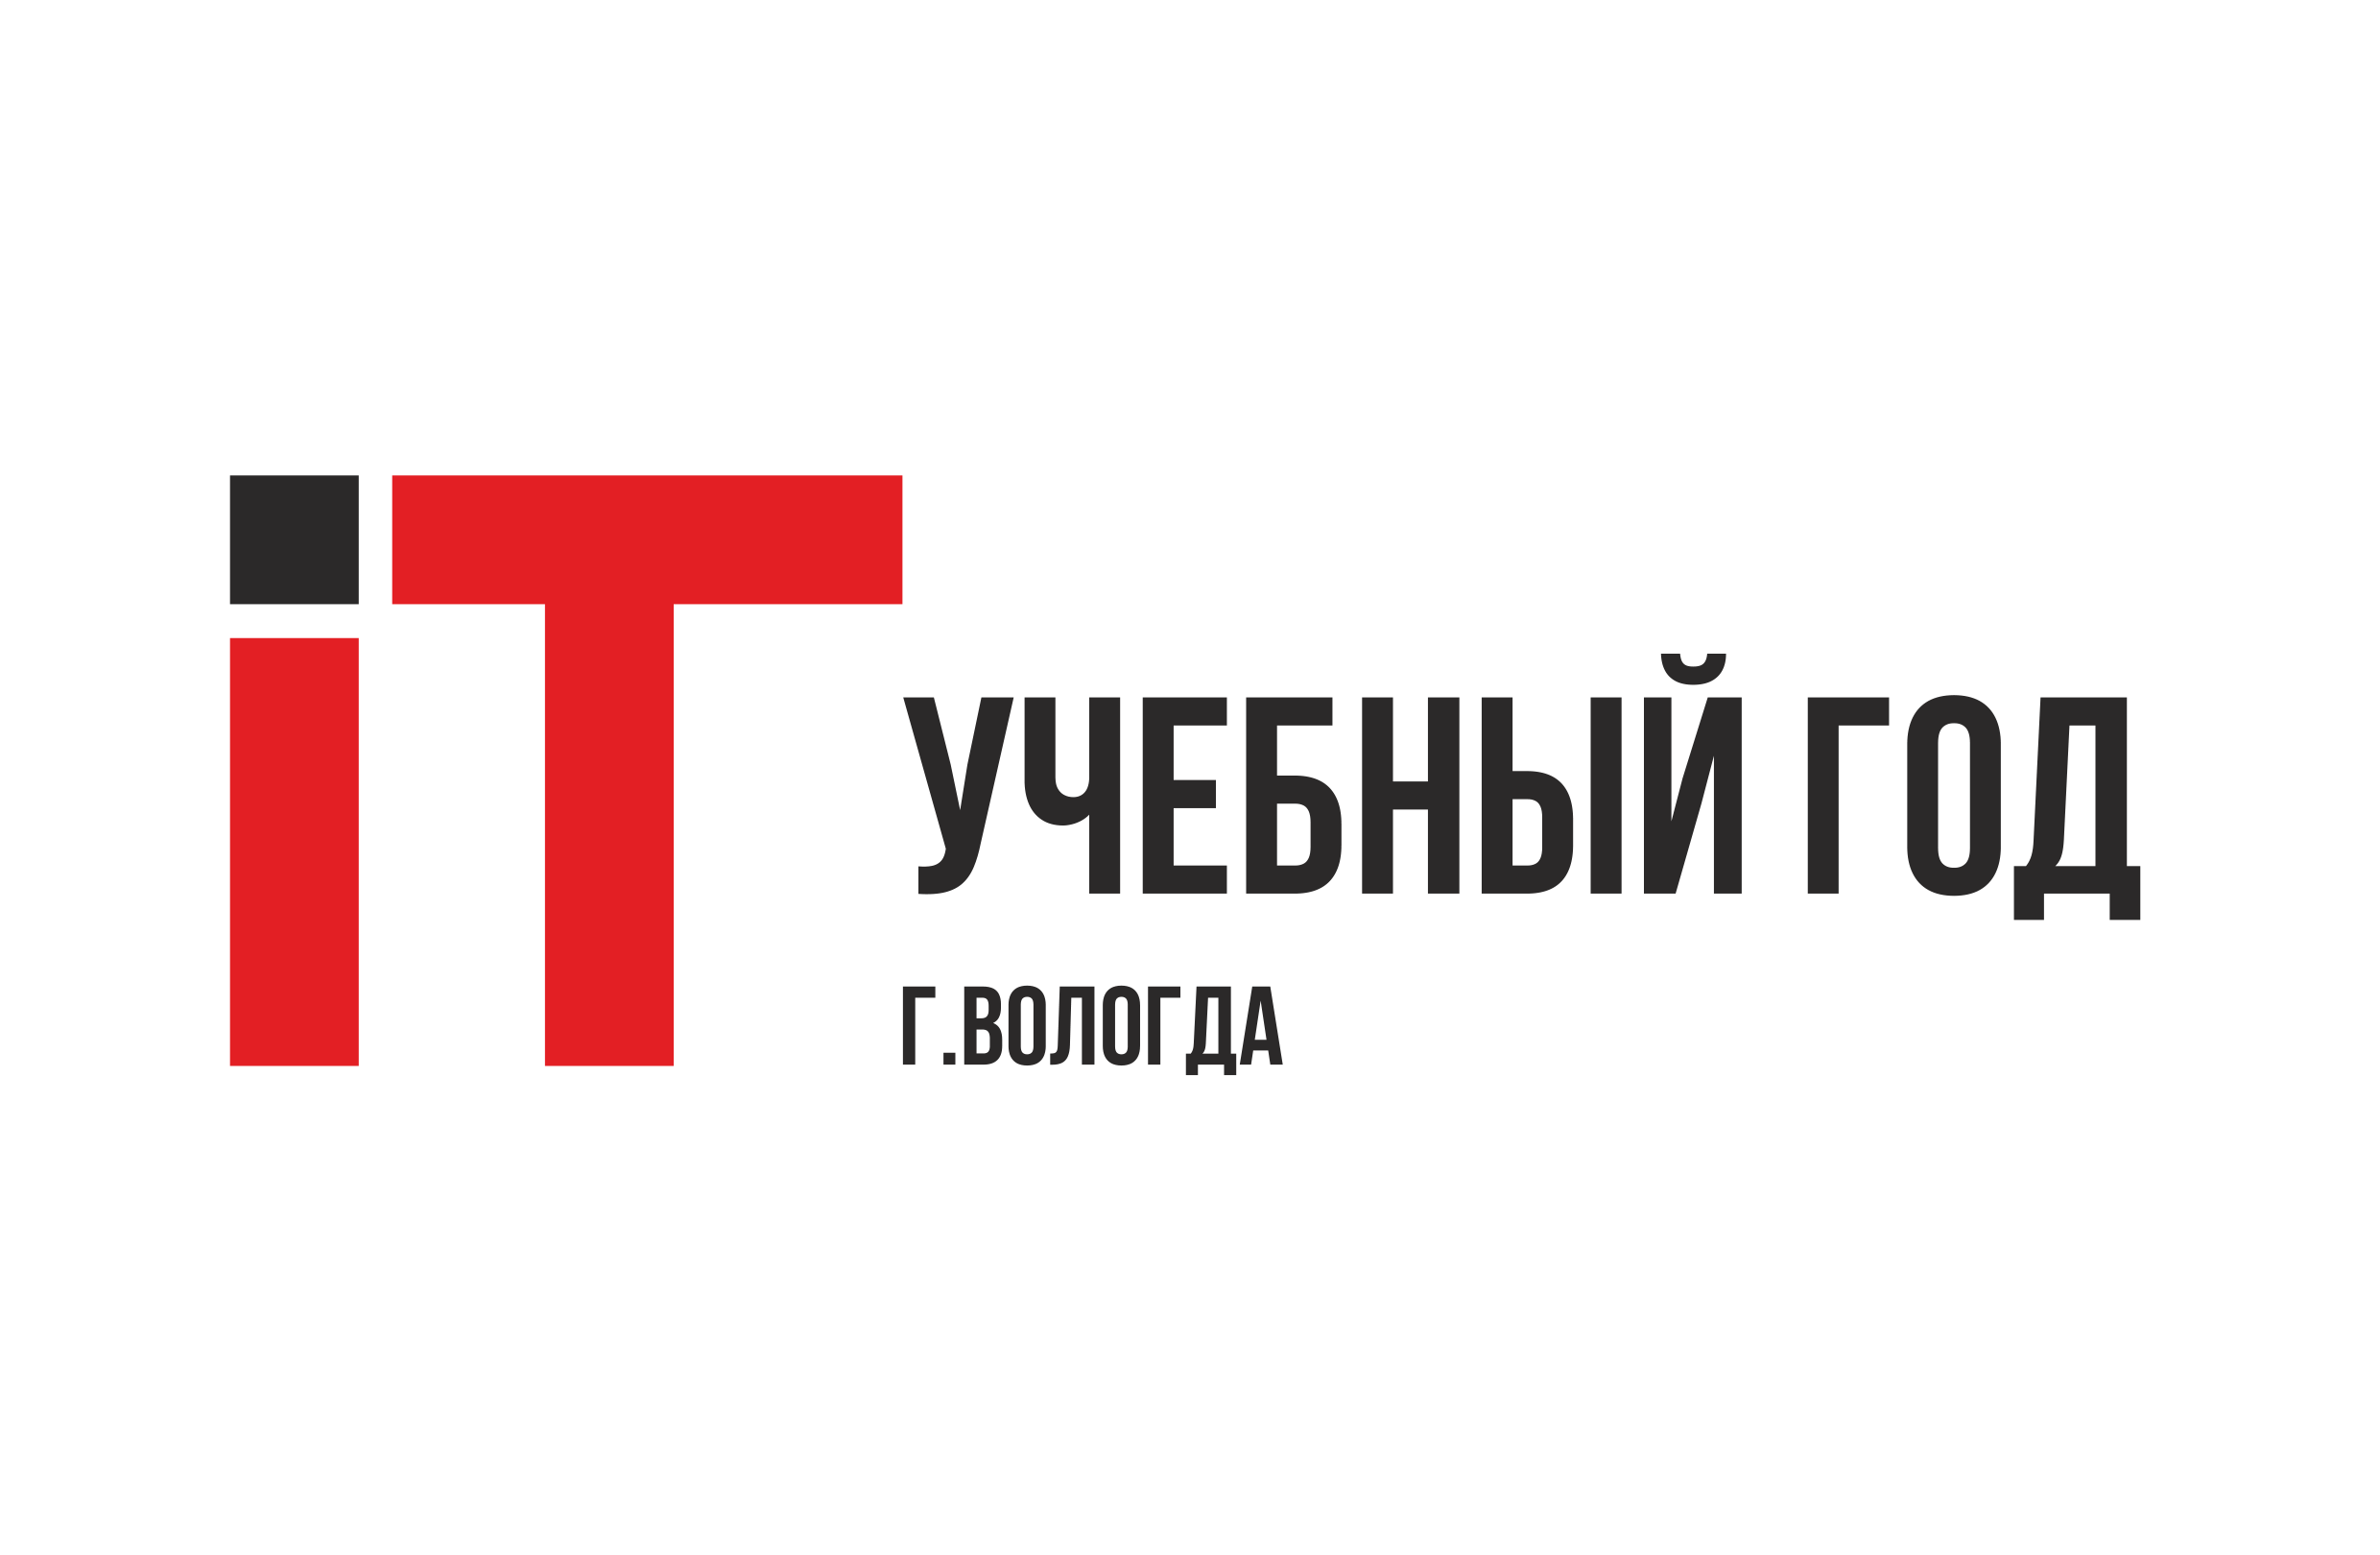 IT_year_logo1